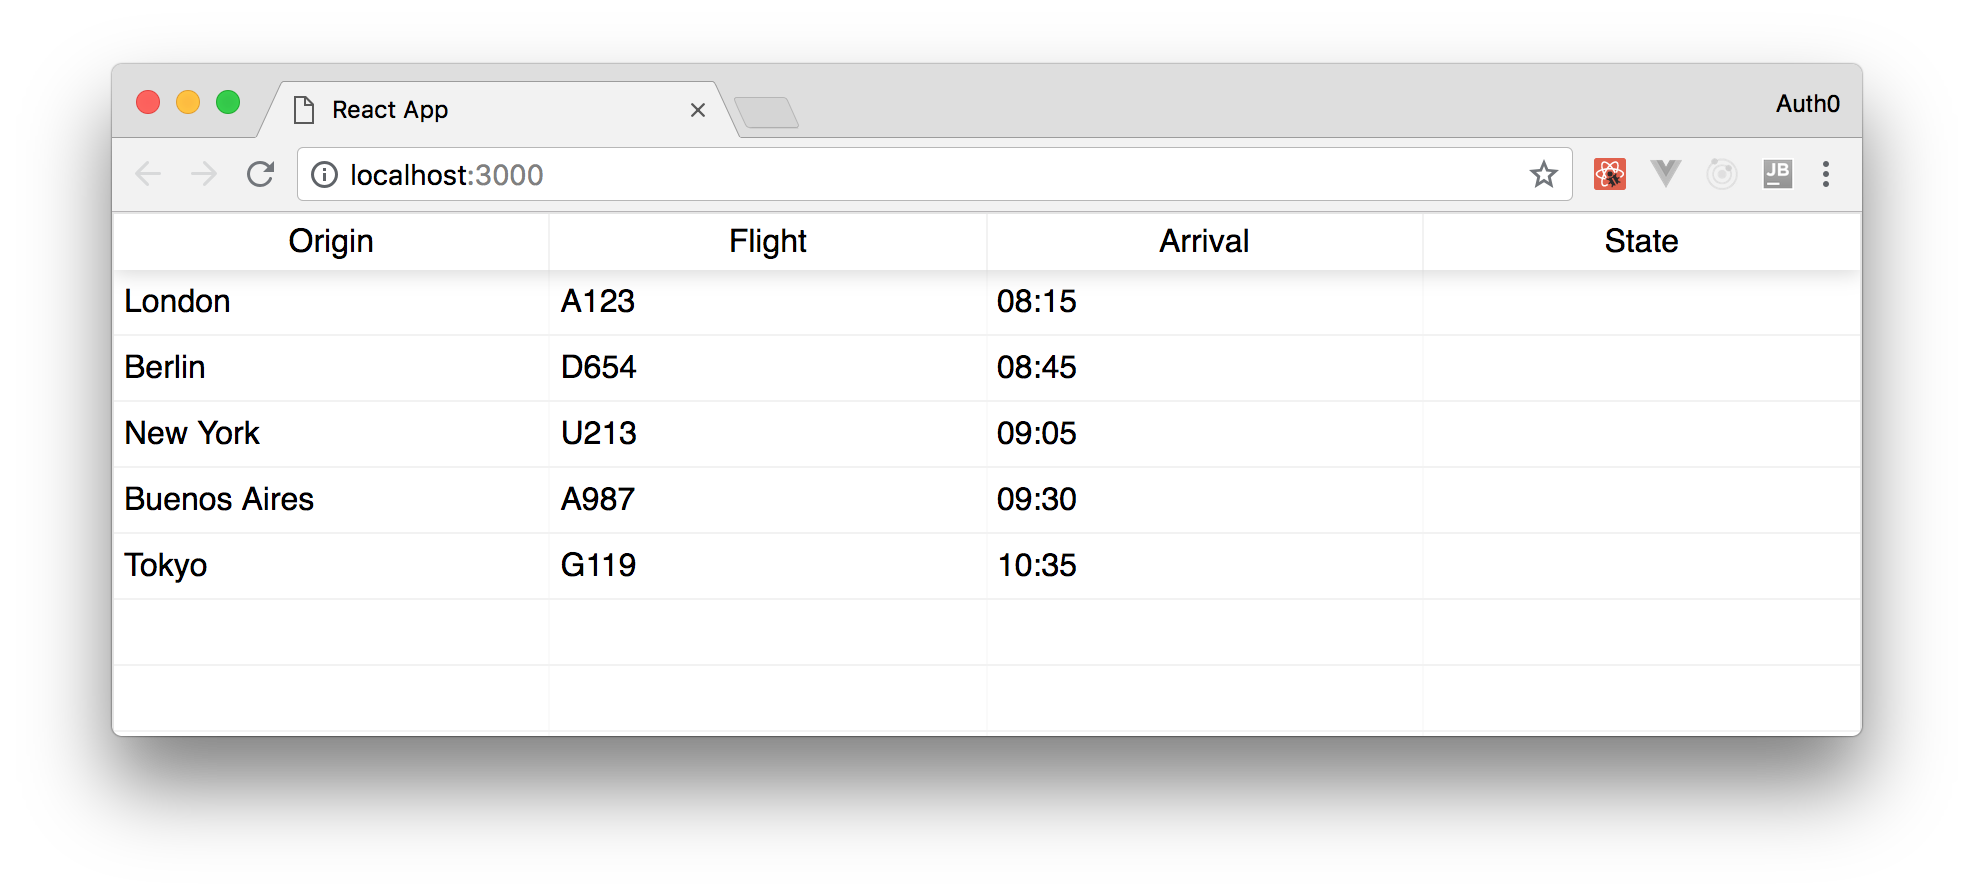 Locally running the real-time flight tracker web application.